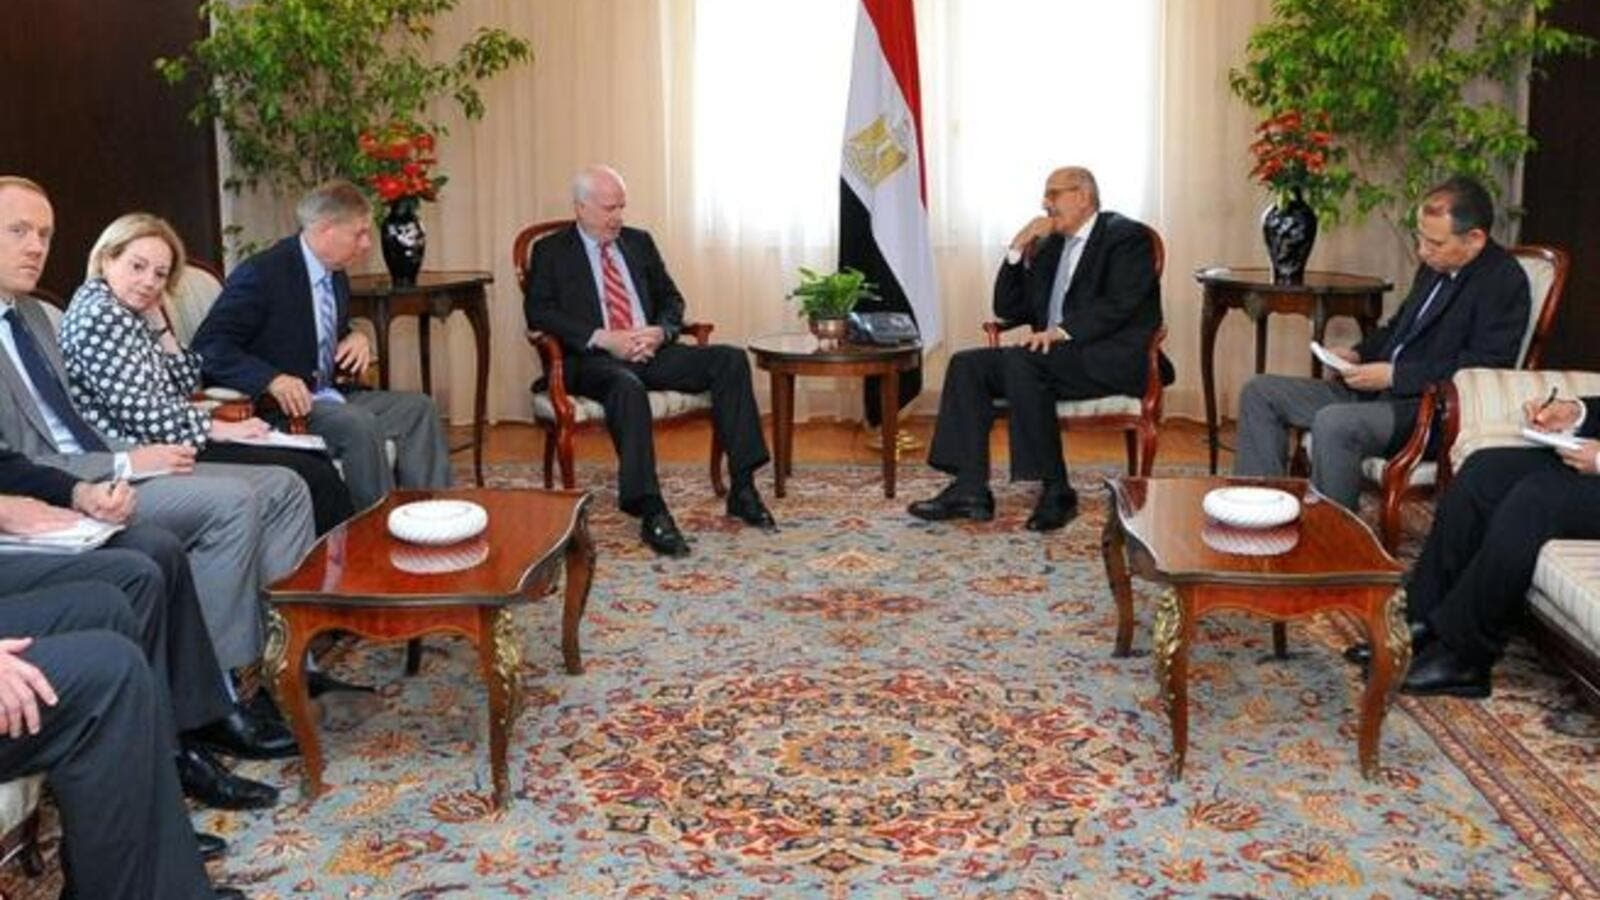 "EGYPT, Cairo : A handout picture made available by the Egyptian presidency on August 6, 2013, shows Egypt's Vice President Mohamed ElBaradei holding talks with the US Senator John McCain on August 6, 2013 in Cairo. ""AFP PHOTO / HO /EGYPTIAN PRESIDENCY """